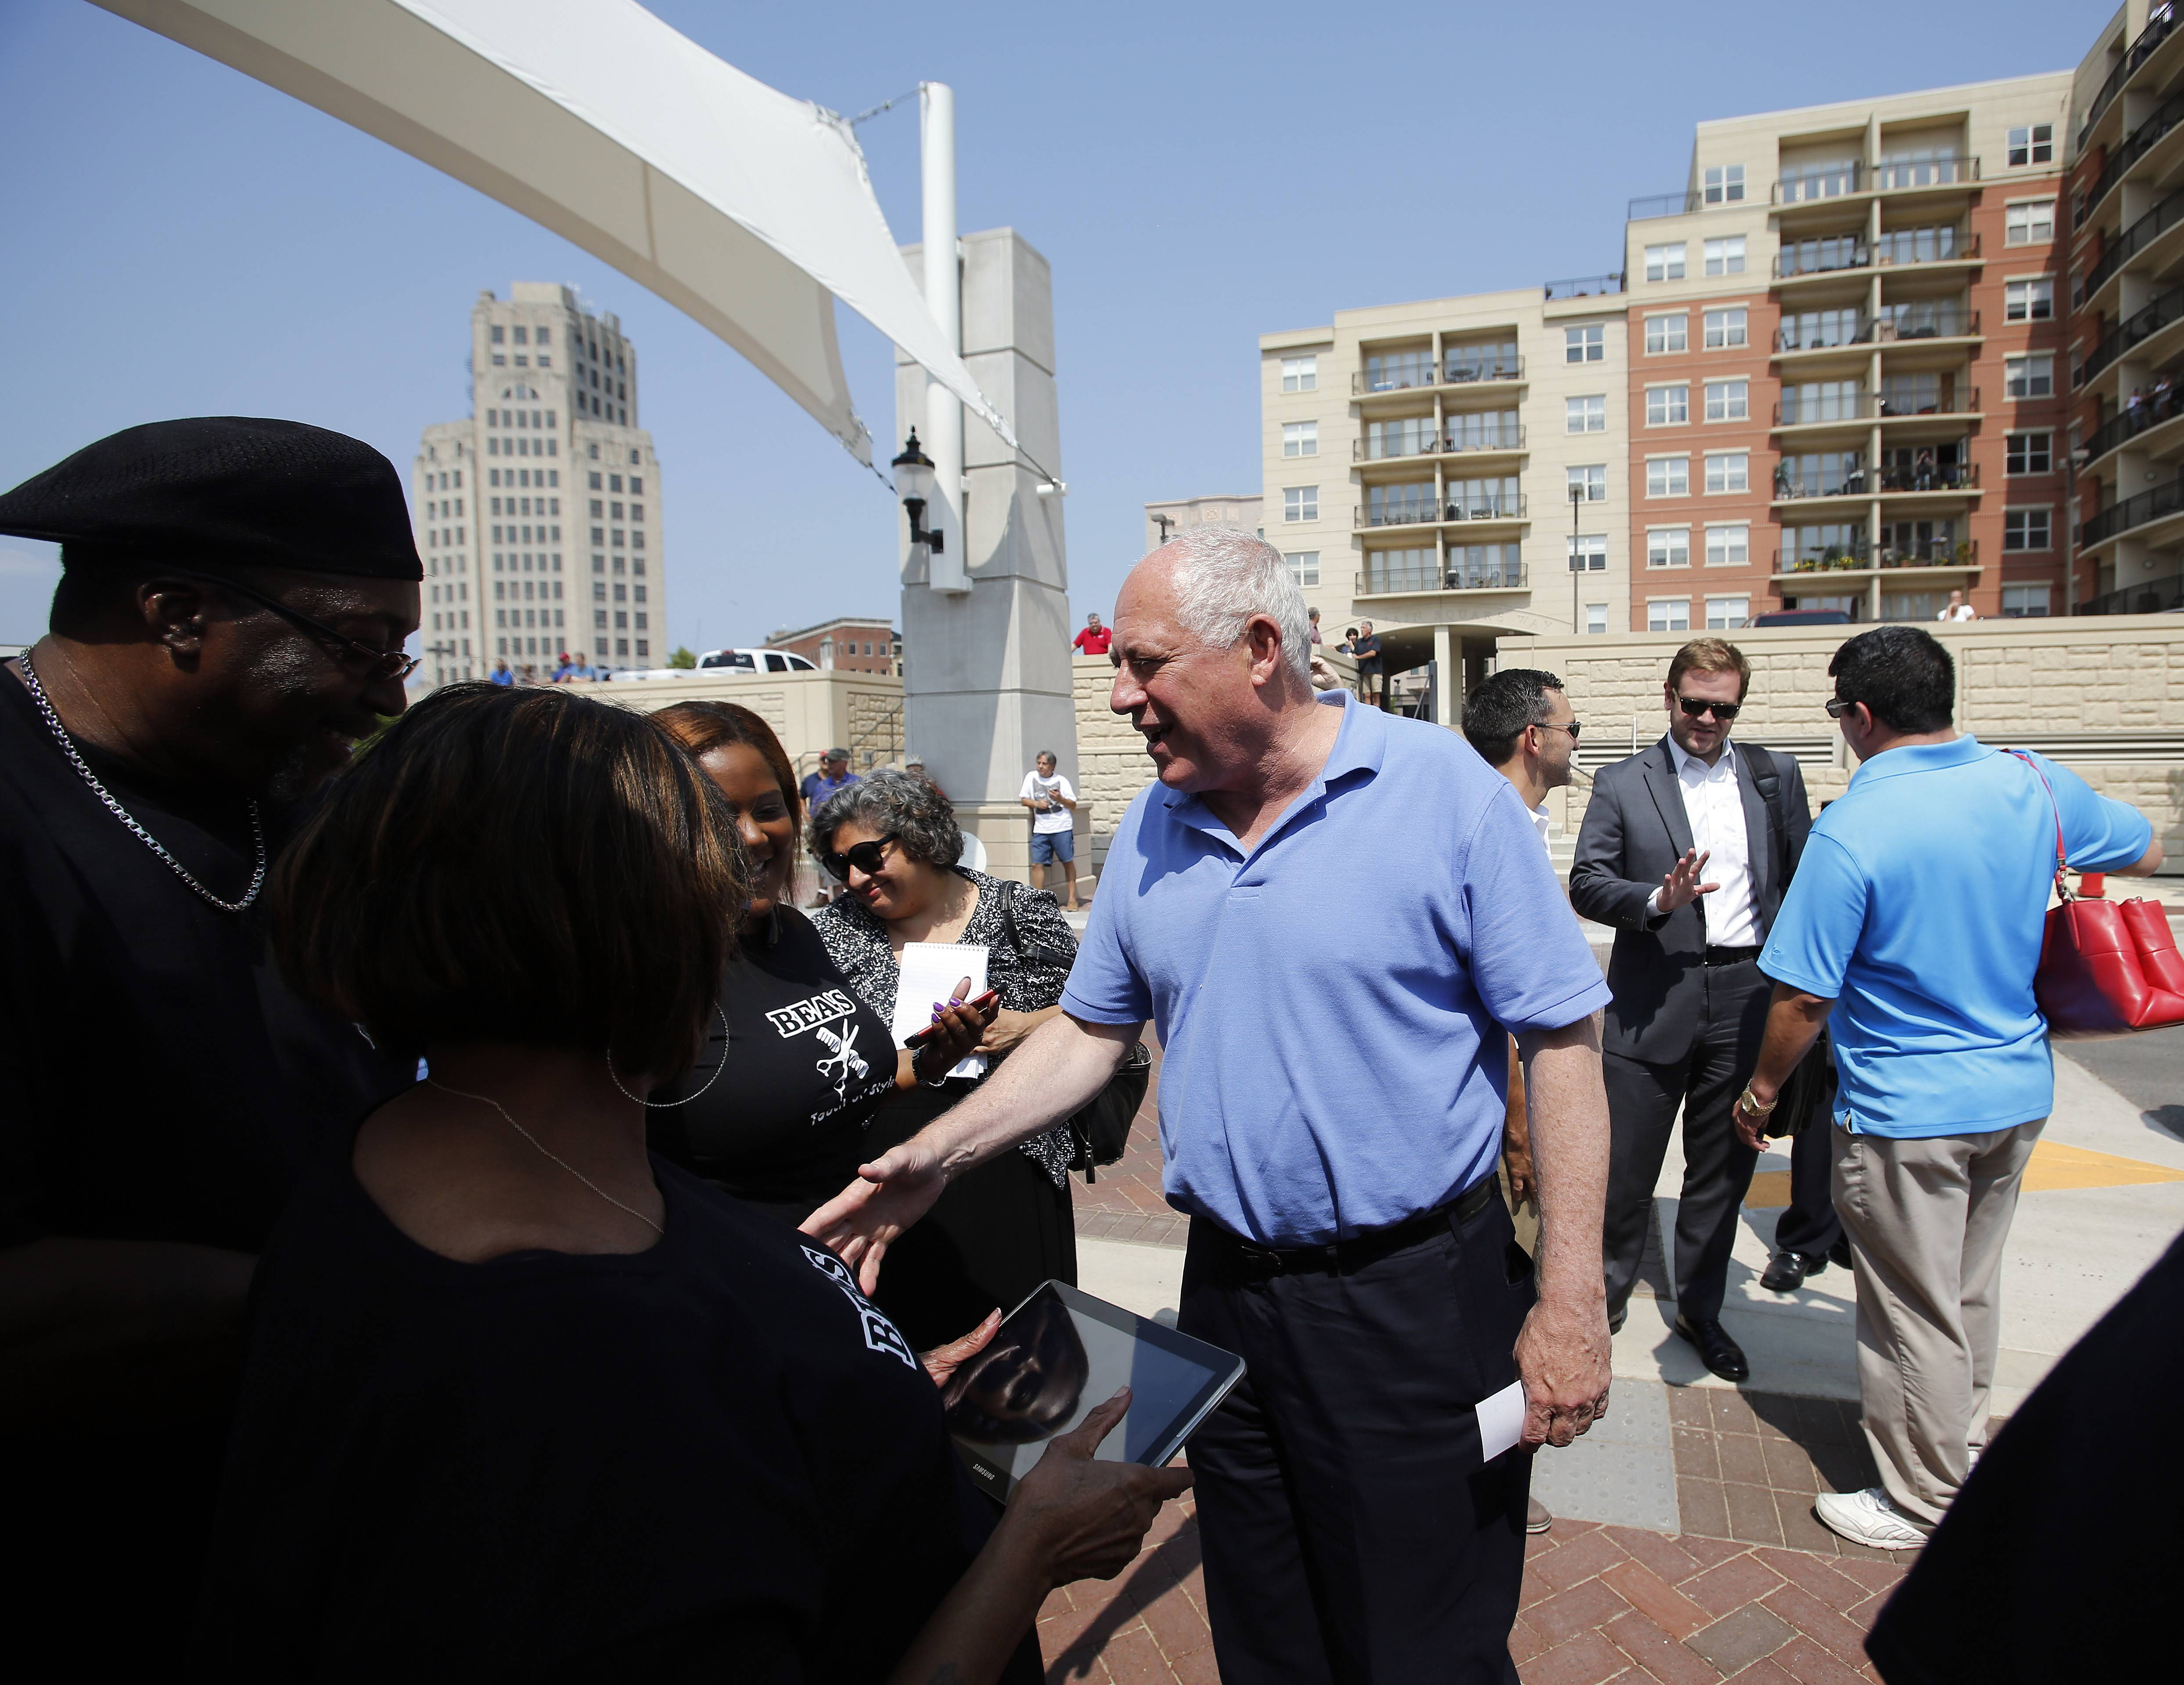 Gov. Pat Quinn greets people as he arrives Saturday for the official opening of the Riverside Drive promenade in Elgin. Work was finished in June after two years of construction using two state grants totaling $9 million.